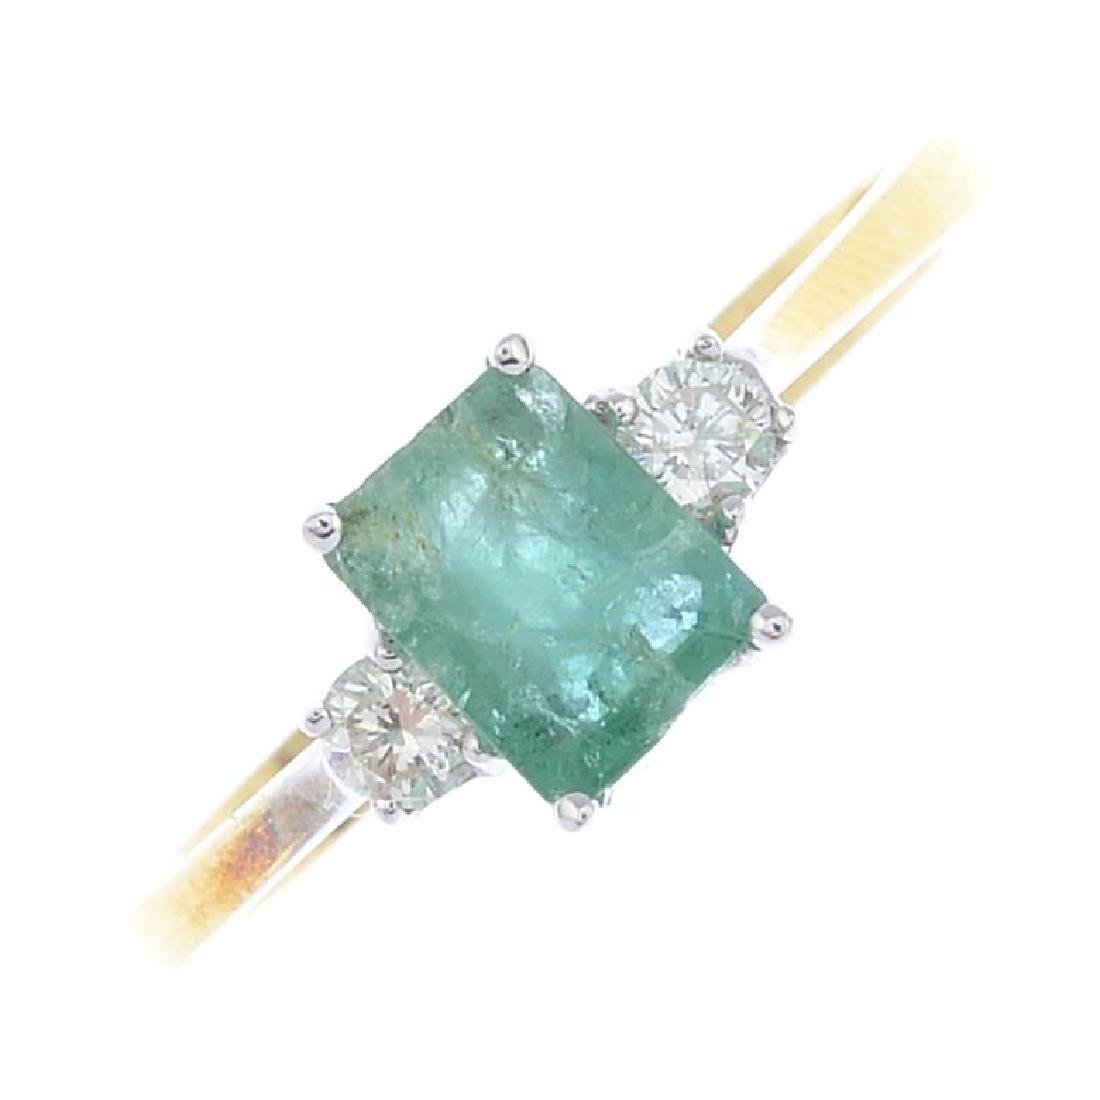 An 18ct gold emerald and diamond three-stone ring. The